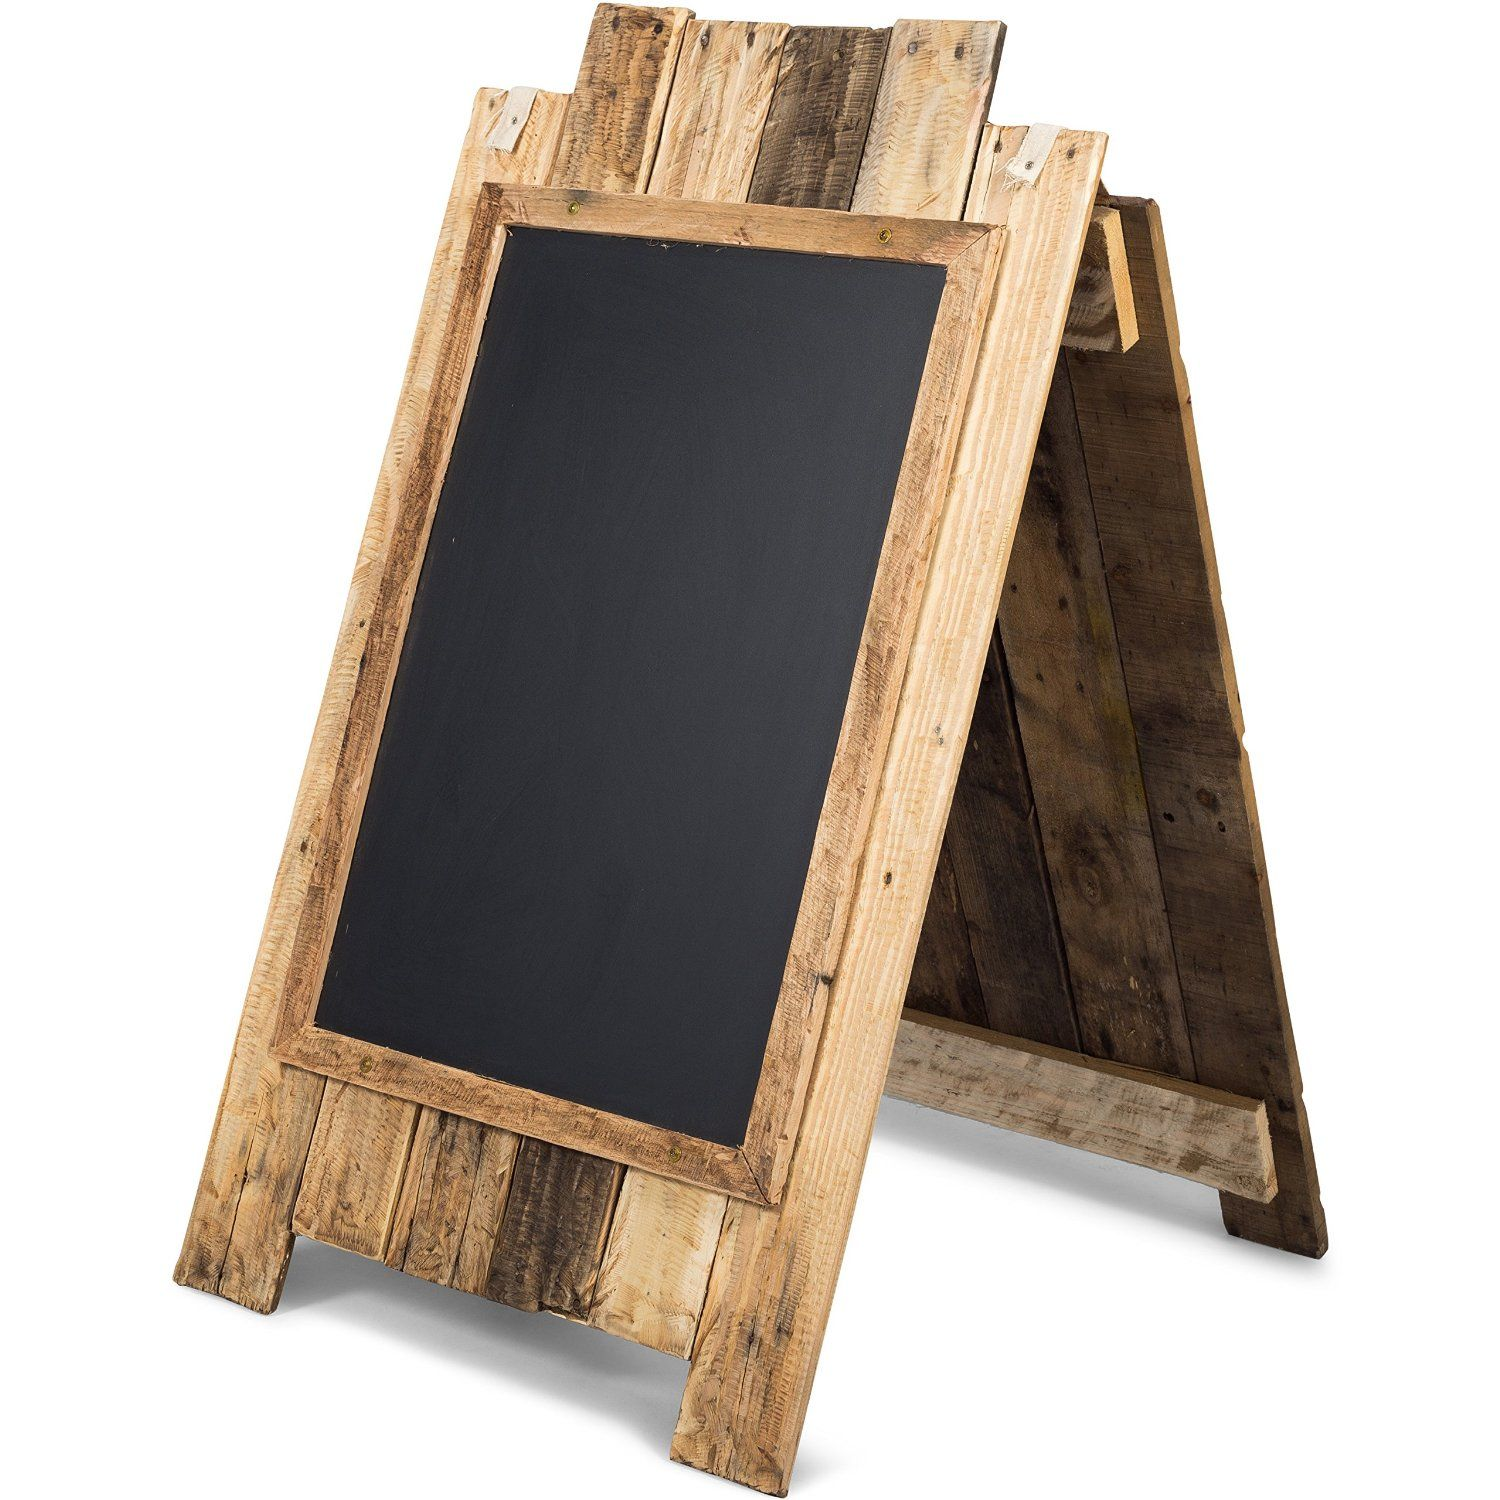 how to write on chalkboard neatly